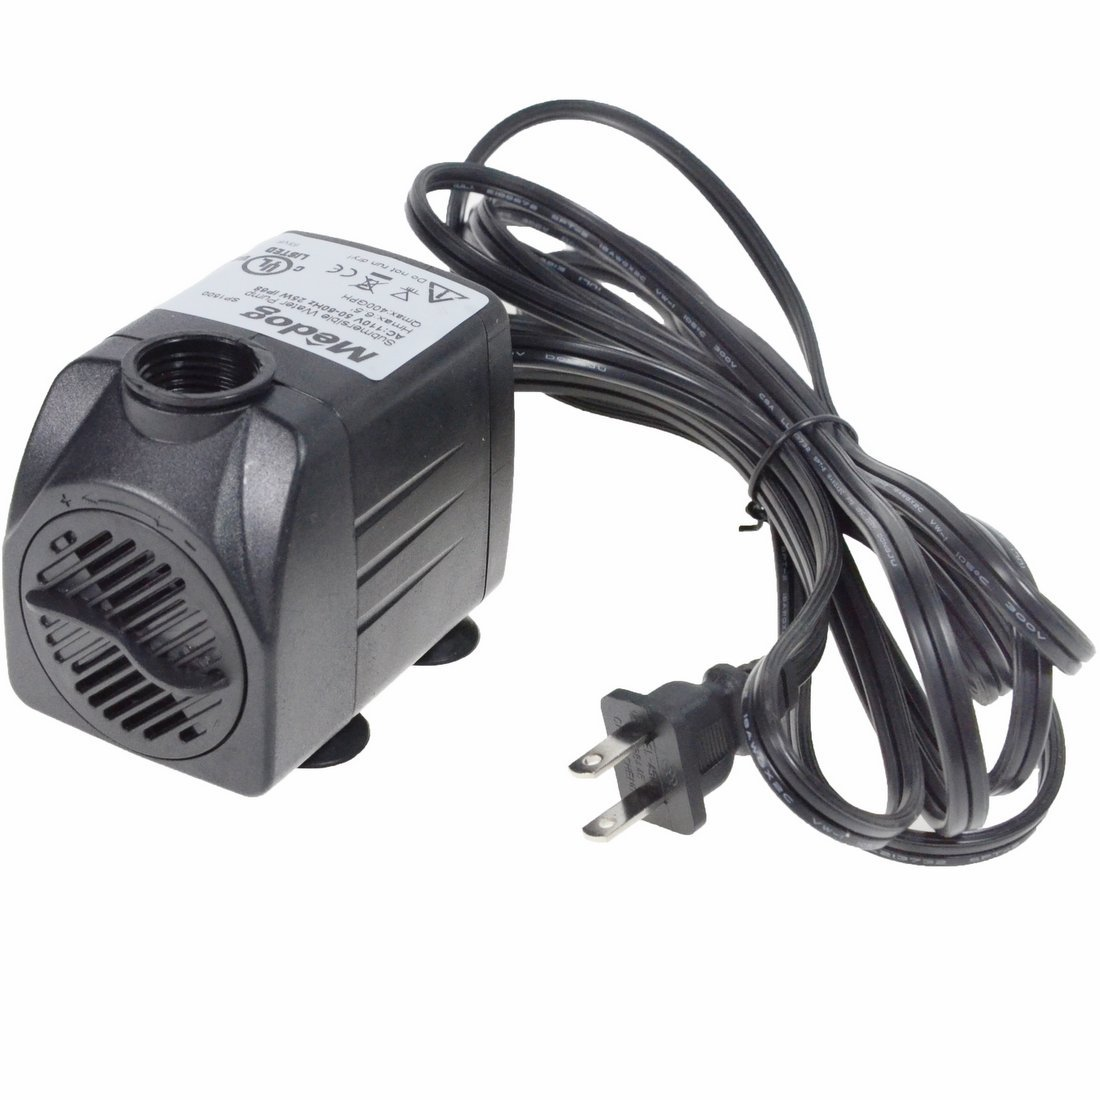 Medog Pond Submersible Water Pump with 25W Aquariums, 400GPH Hydroponics, Fountains, Ponds, Statuary, Waterfalls with UL Certification (400GPH)